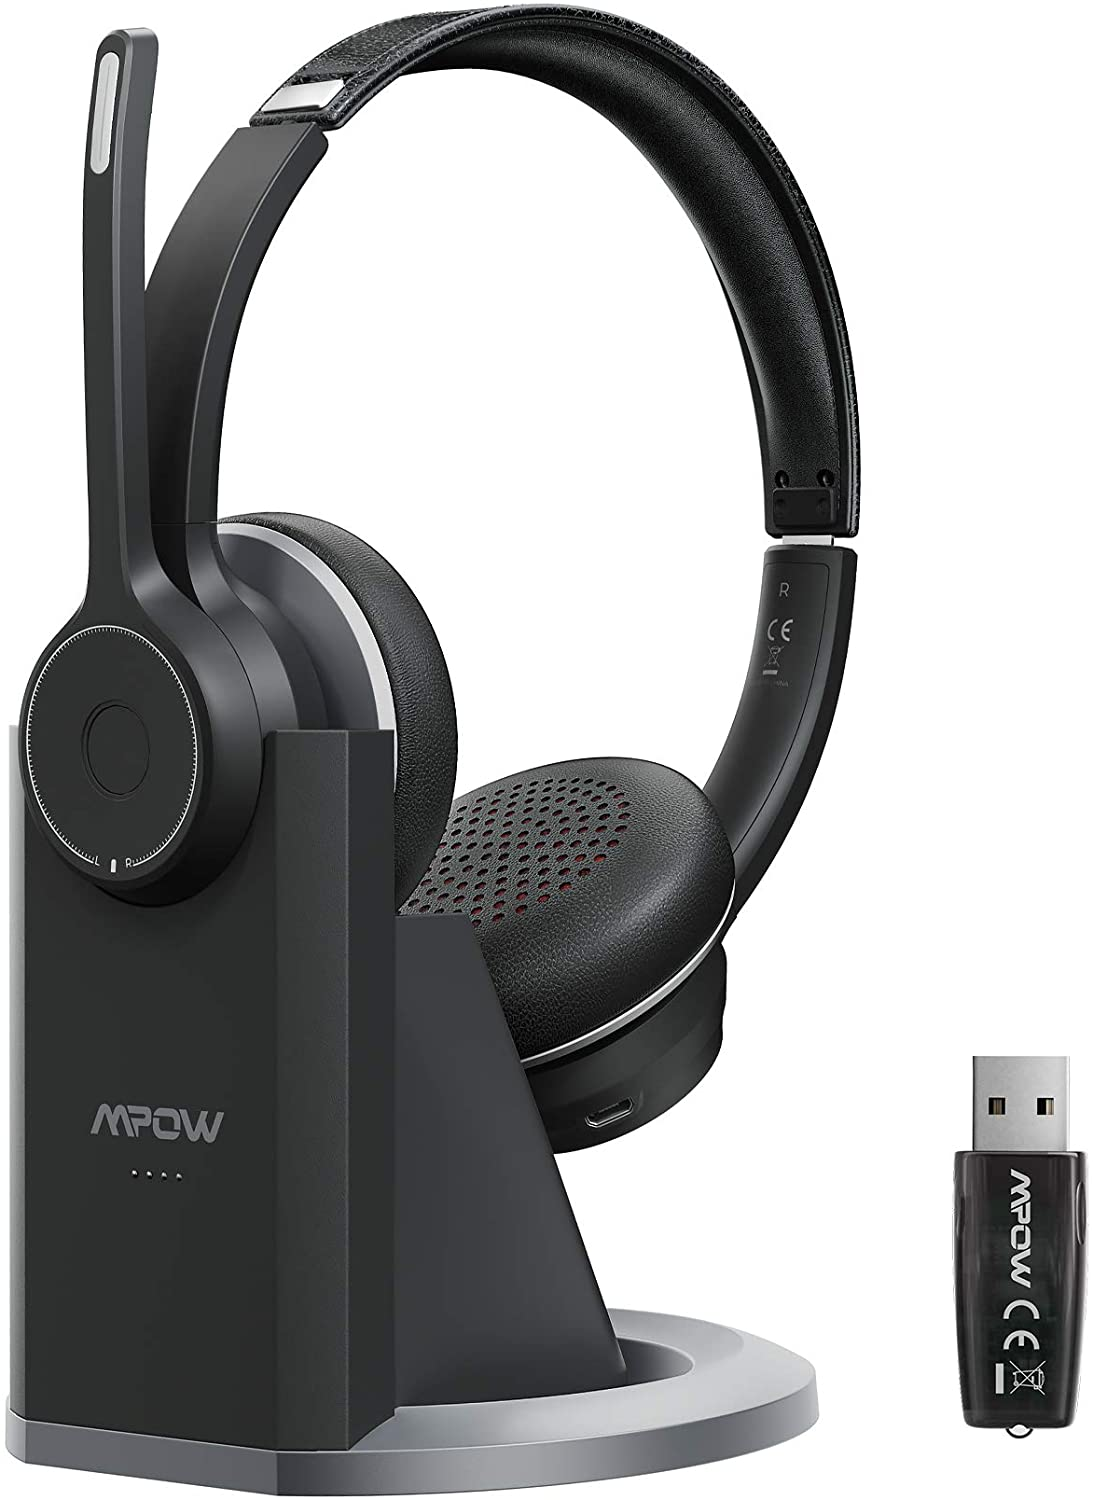 Review of Mpow HC5 Pro Bluetooth 5.0 Headset